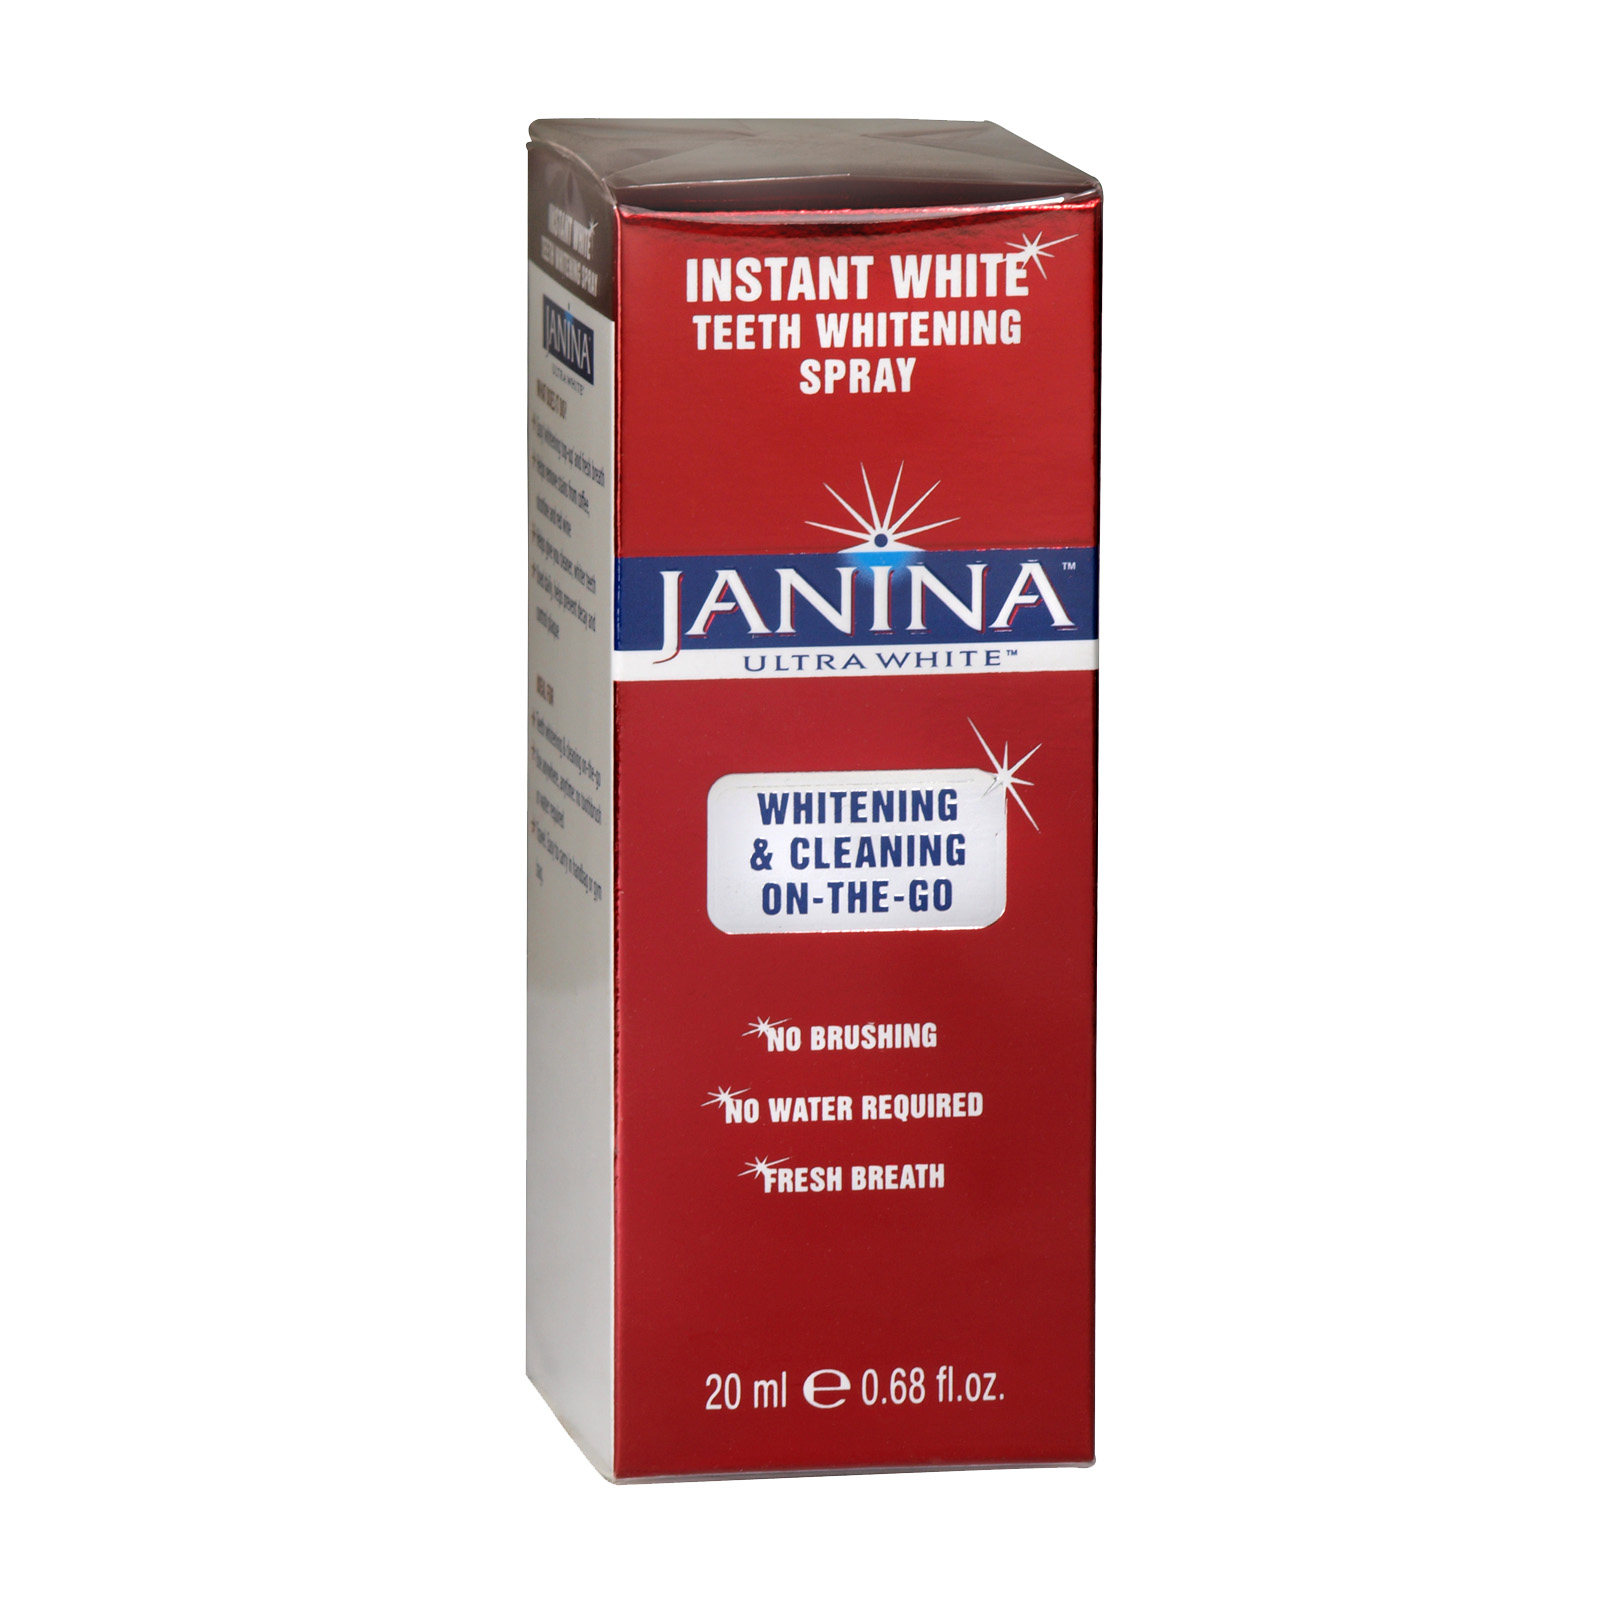 JANINA ULTRA WHITENING 20ML WHITENING+CLEANING ON THE GO SPRAY